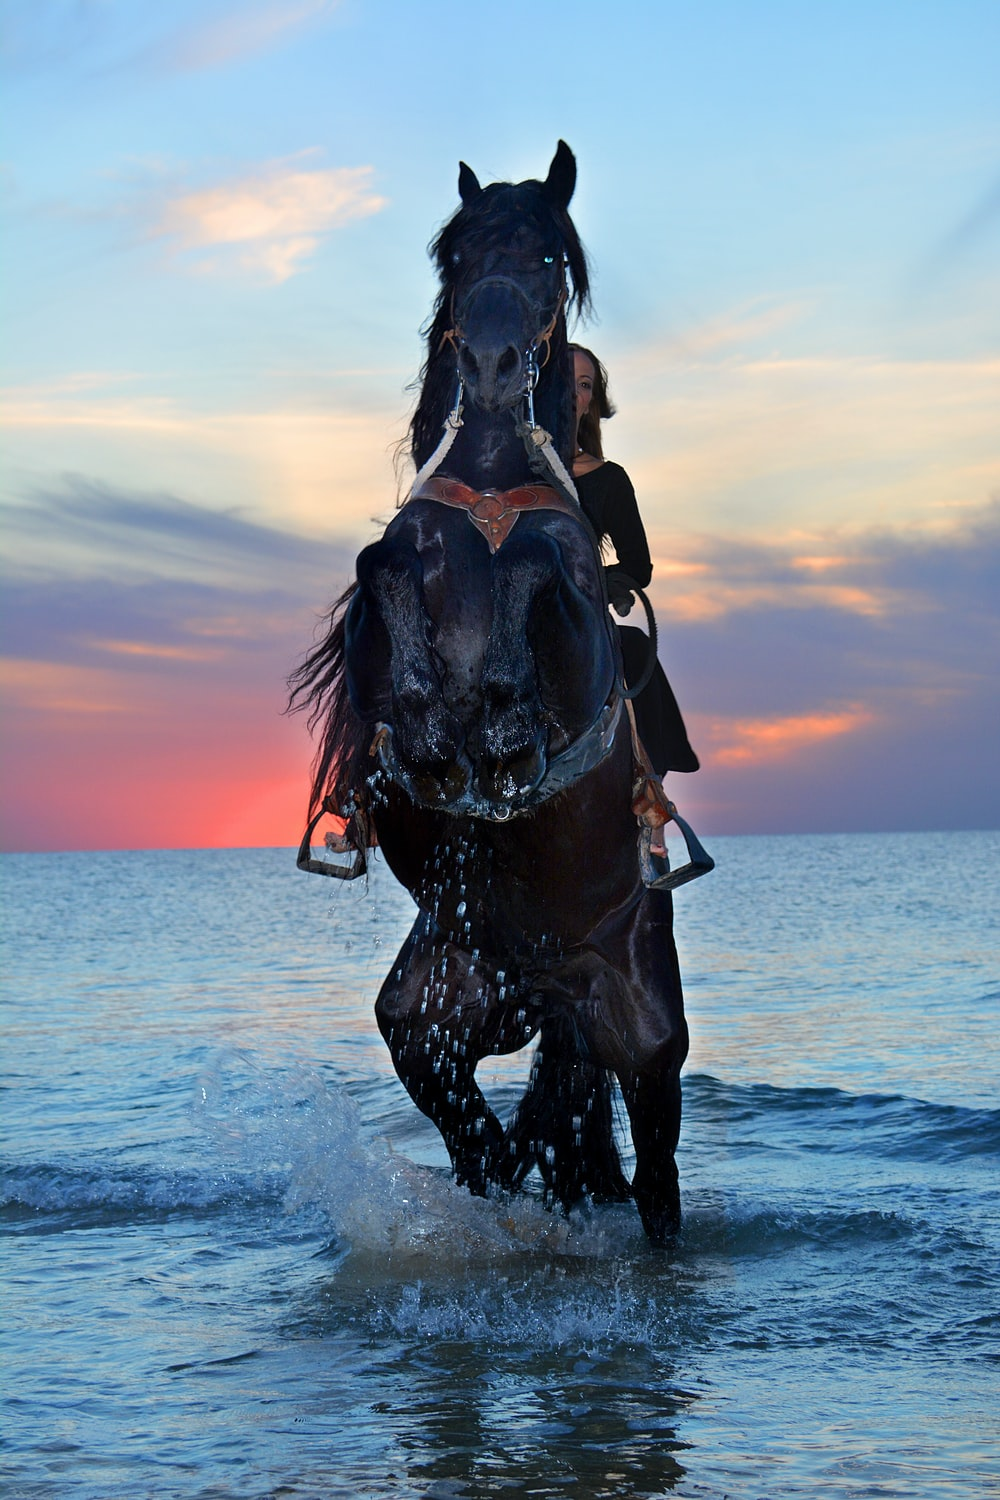 brown horse on body of water during daytime